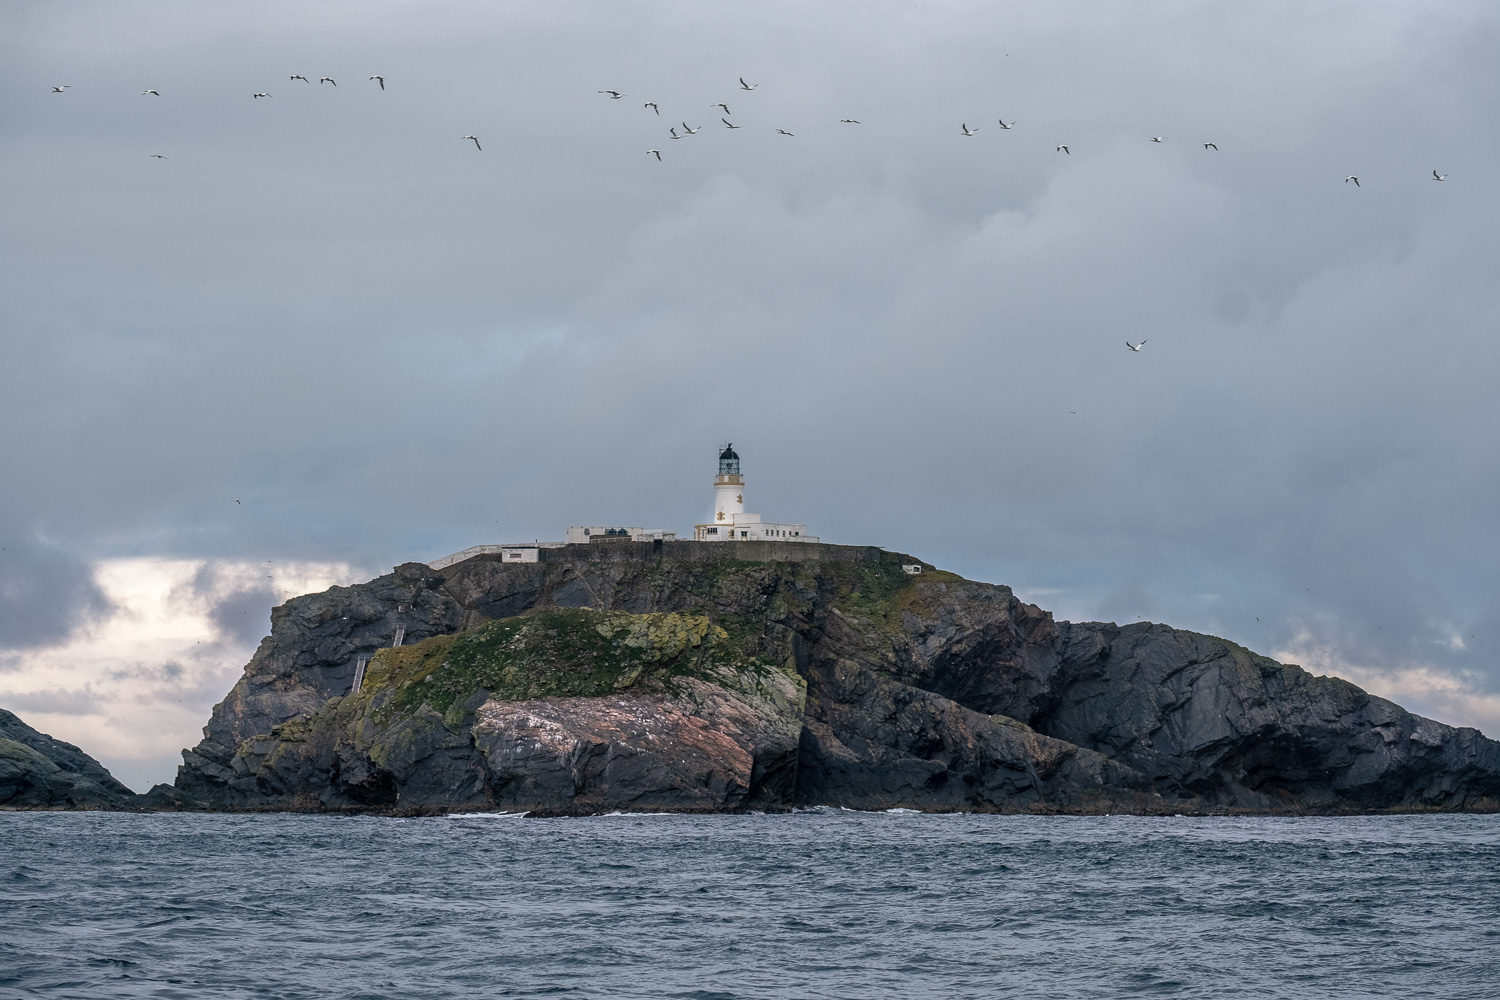 Northernmost point in the UK. If you look closely to the left of the lighthouse you can see two ladders on the side of the island. Climbing these plus the lower one you cant see is the only way to get to the lighthouse from a boat for people and supplies.